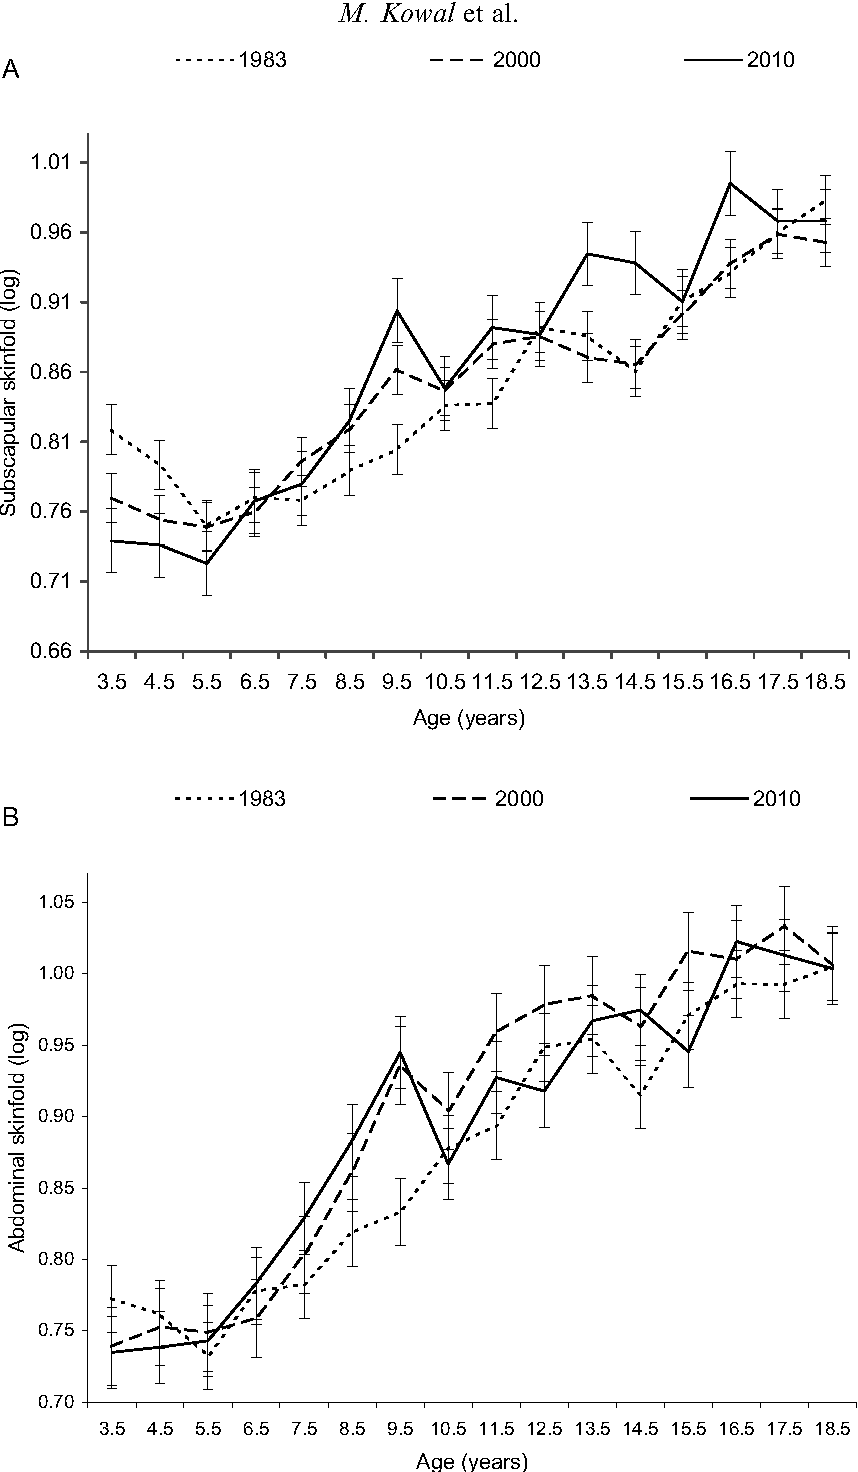 Fig. 2. Mean (logarithmically transformed) and SE of subscapular (A), abdominal (B), suprailiac (C) and triceps (D) skinfolds for Krakow boys, 1983, 2000 and 2010.